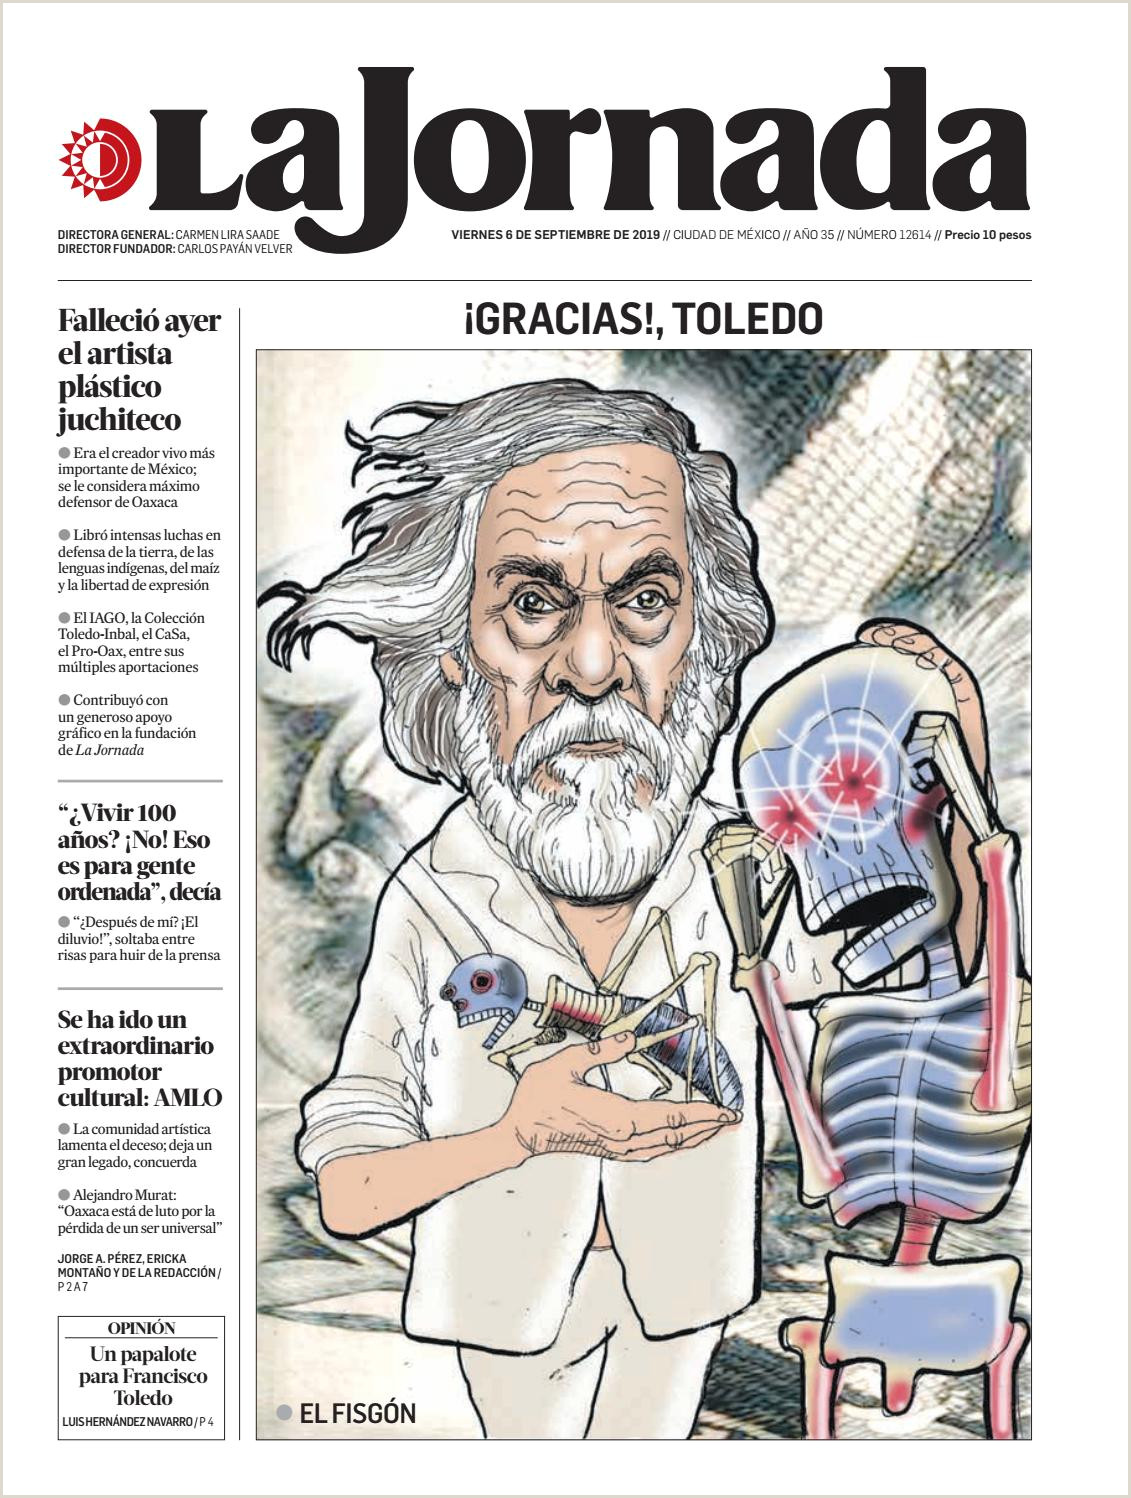 La Jornada 09 06 2019 by La Jornada issuu